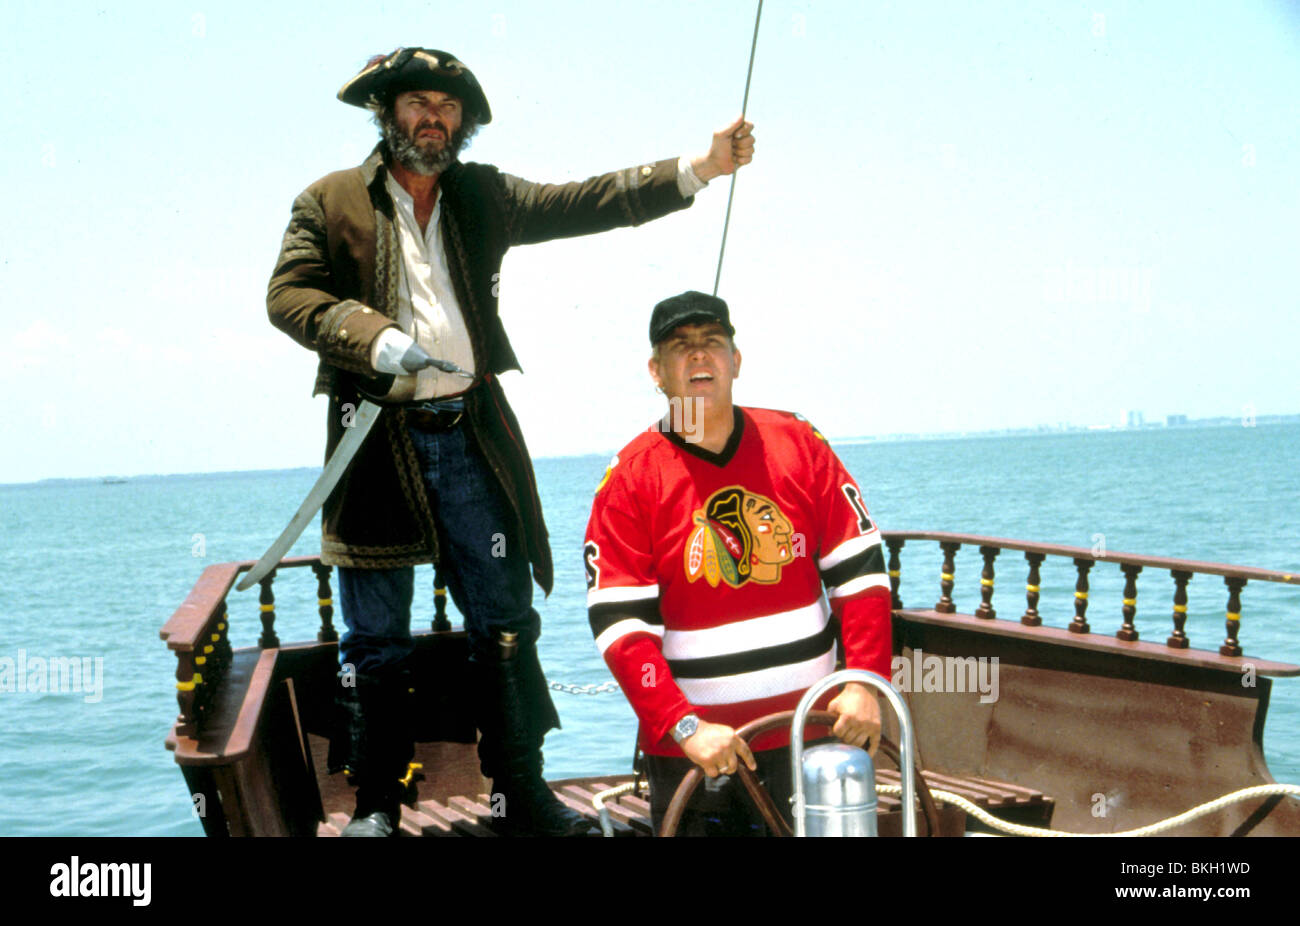 Summer Rental 1985 Rip Torn John Candy Smrr 002 Stock Photo Alamy